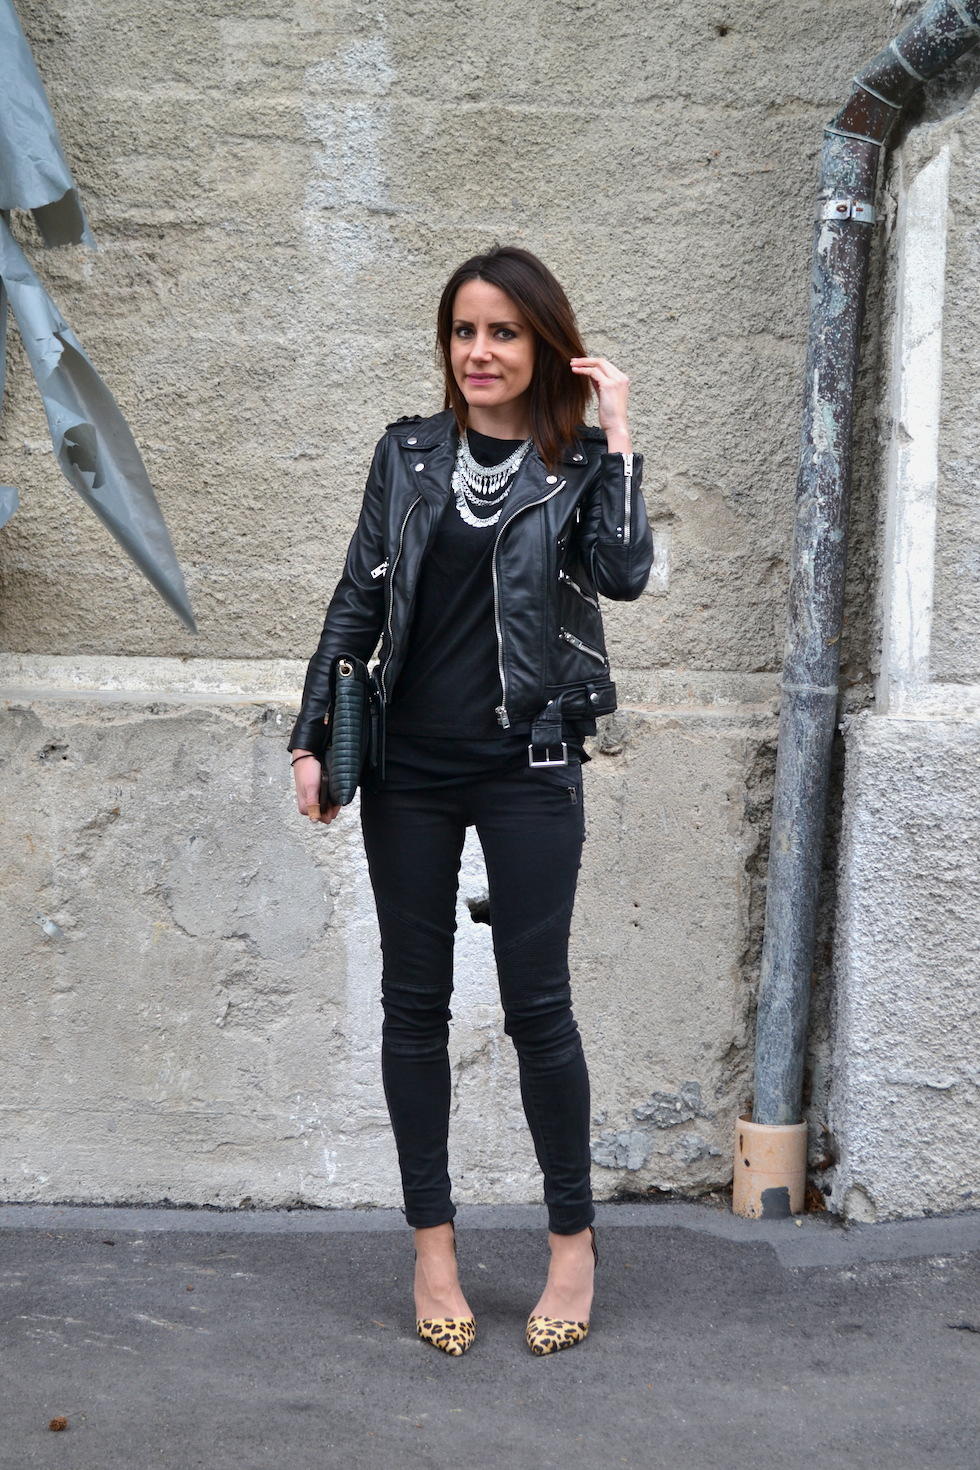 1_The Kooples Motojacket, Fashionfriends Statement Necklace, Trend 2015 fashionblog schweiz